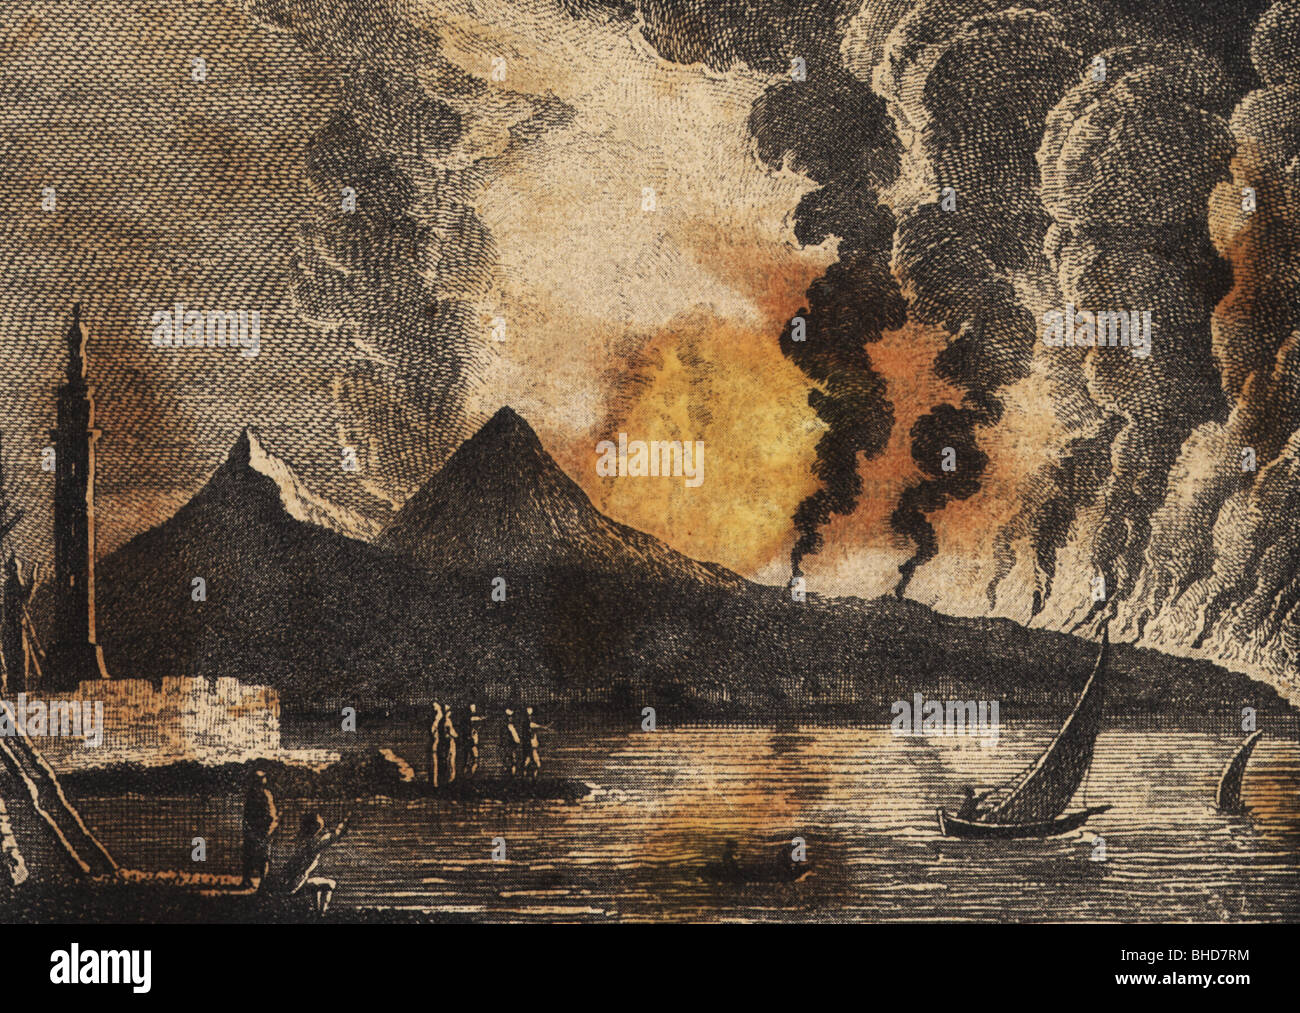 natural disaster / catastrophe, volcanic eruption, Vesuvius, 15.6.1794, Additional-Rights-Clearances-NA - Stock Image